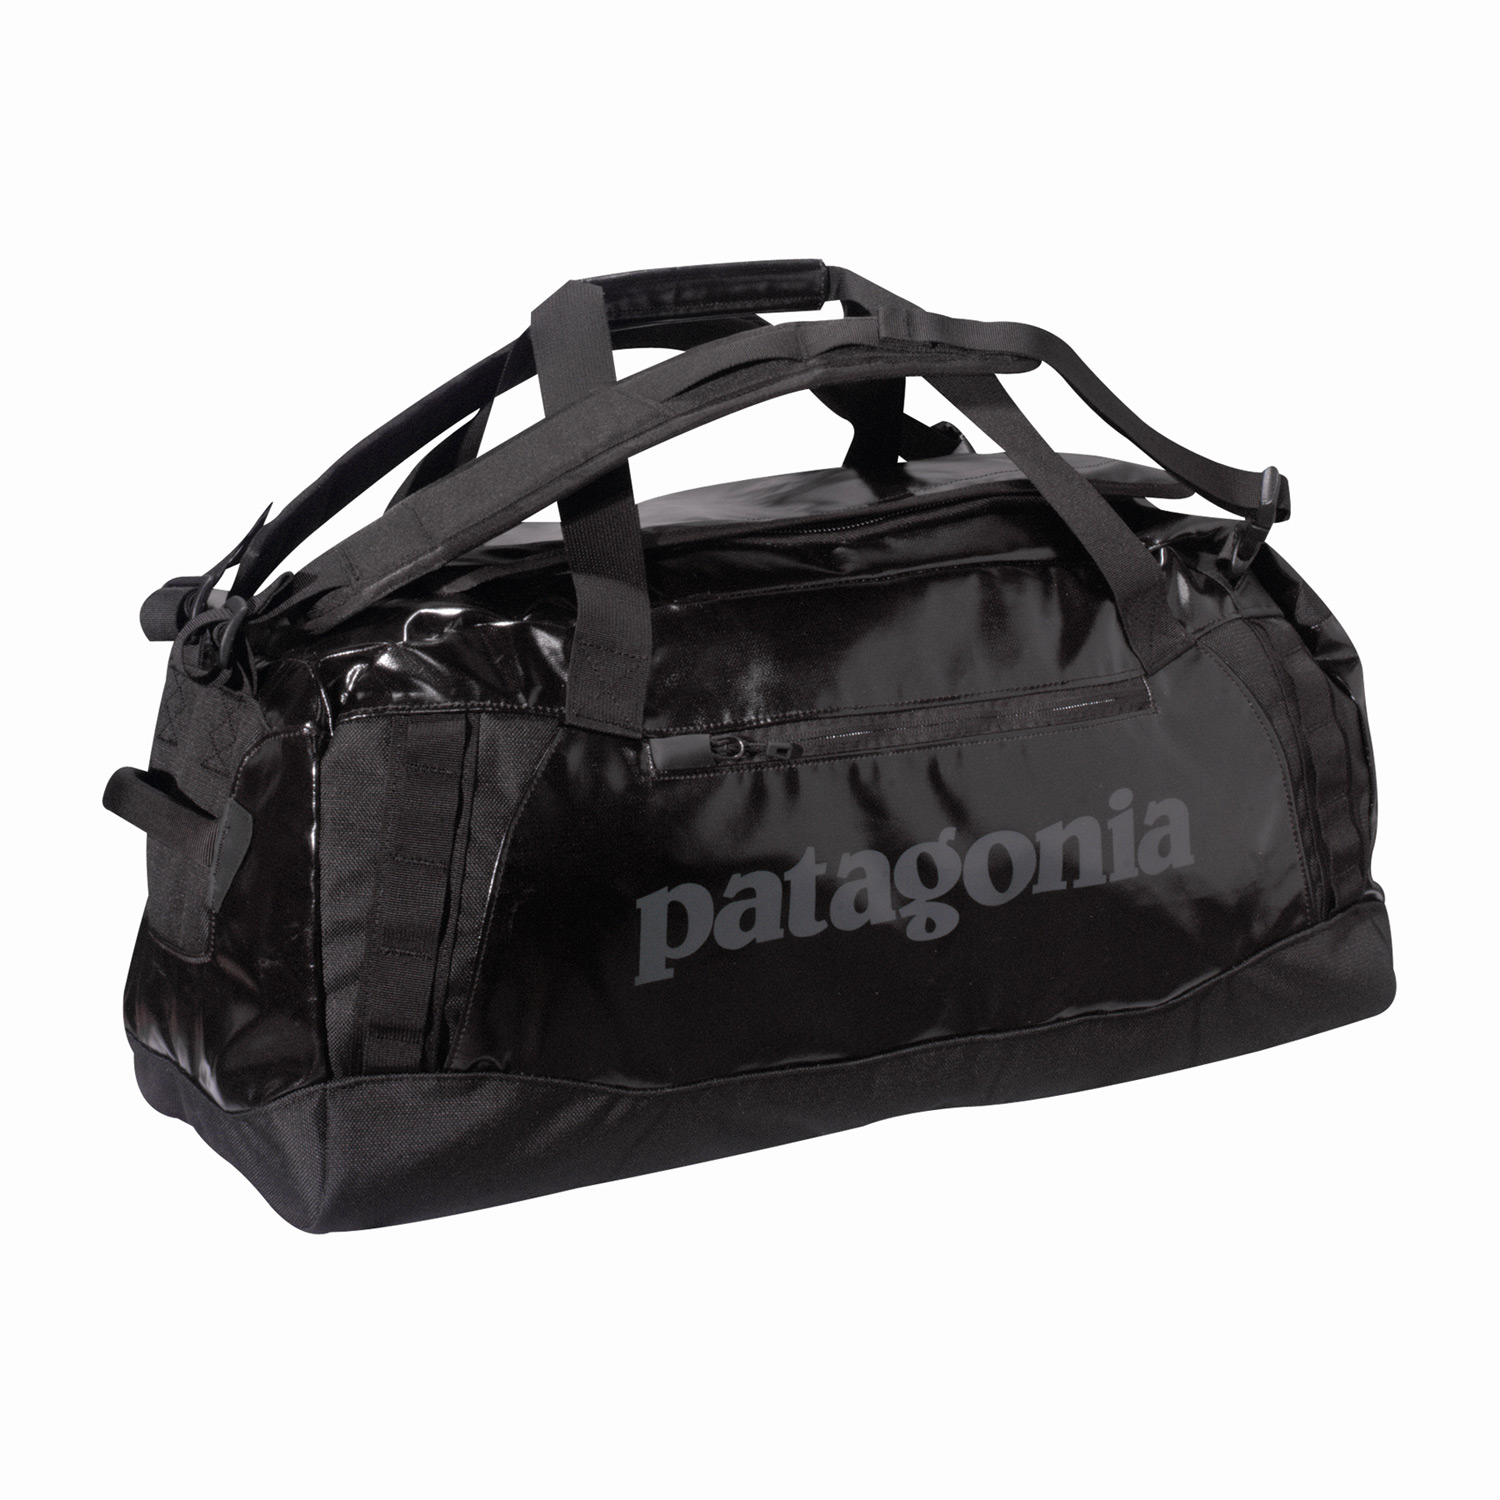 Entertainment A highly water-resistant and super-durable duffel designed to carry your gear to faraway places. FABRIC: 14.7-oz 1,200-denier polyester (50% solution-dyed  with a TPU-film laminate and a DWR (durable water repellent  finishKey Features of the Patagonia  Hole 60L Duffle Bag Black: Waterproof fabric with sewn seams protects your gear in wet conditions Carry with handle or haul handles; four corner-mounted webbing daisy chains facilitate hauling and tying down big loads U-shaped lid provides easy access to the main compartment; zippered exterior pocket; two zippered internal mesh pockets Bottom padded with foam to protect contents - $119.00